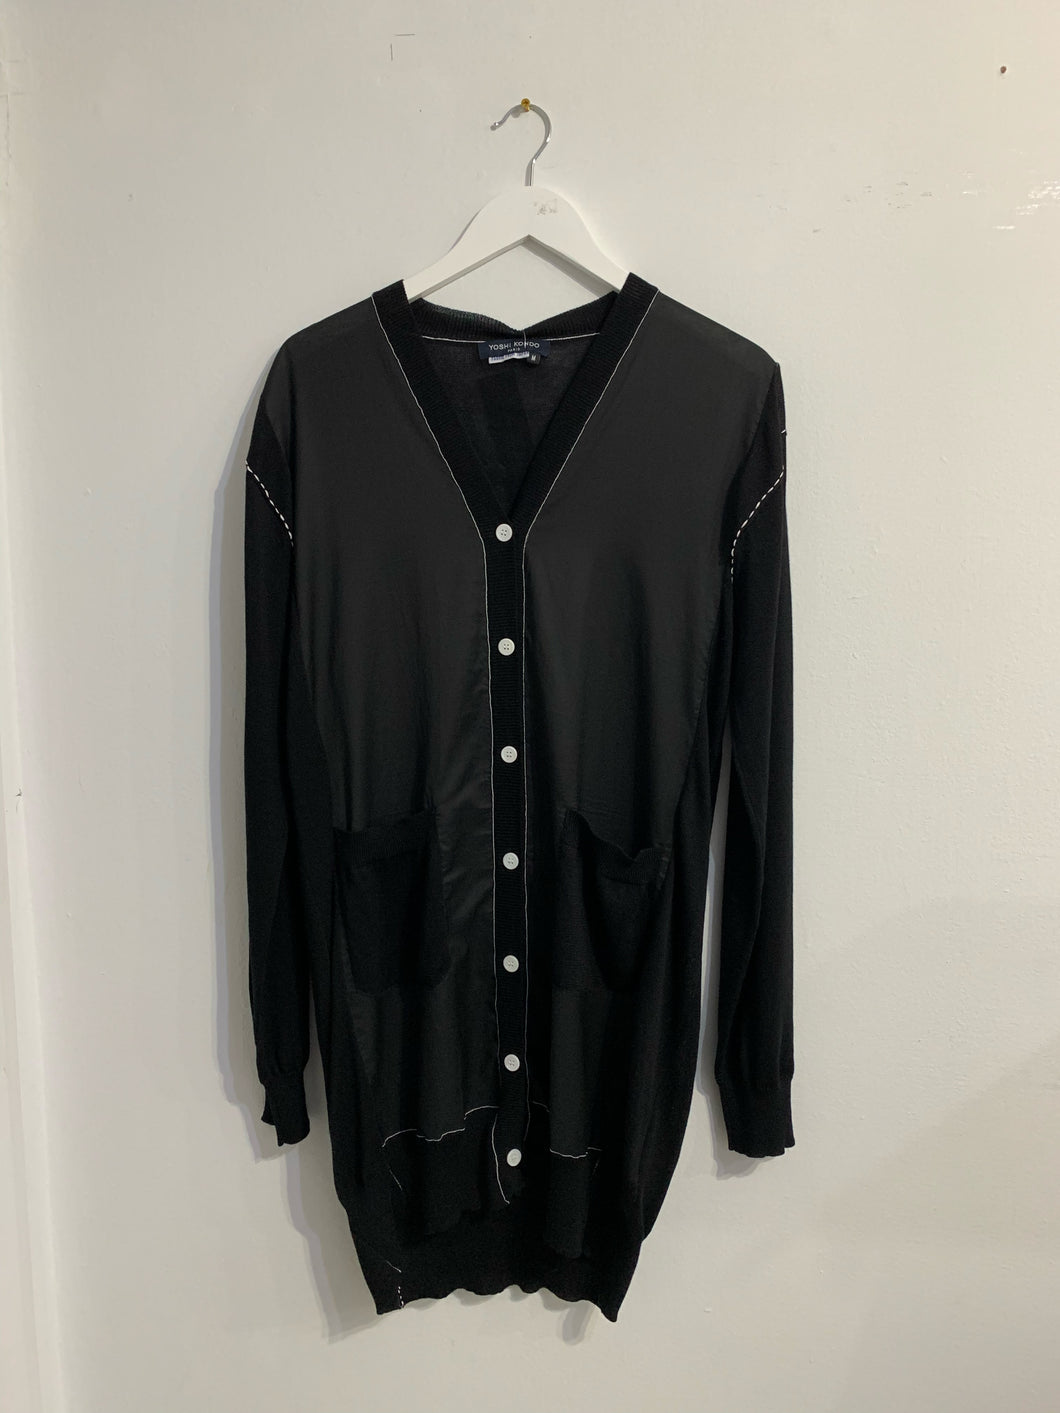 Quest Dress / Long Cardigan - Black